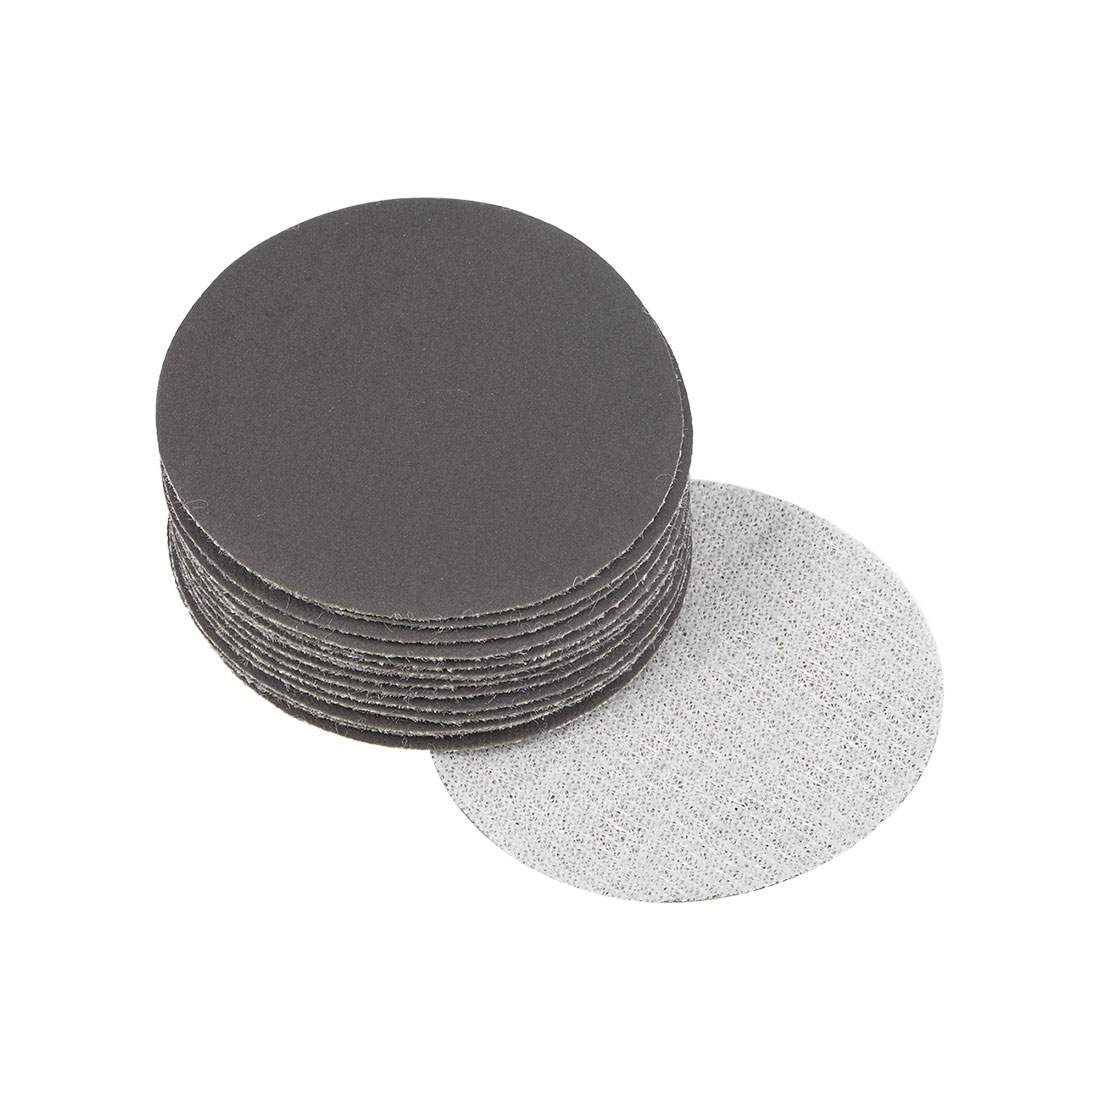 2 inch Wet Dry Discs 1000 Grit Hook and Loop Sanding Disc Silicon Carbide 15pcs